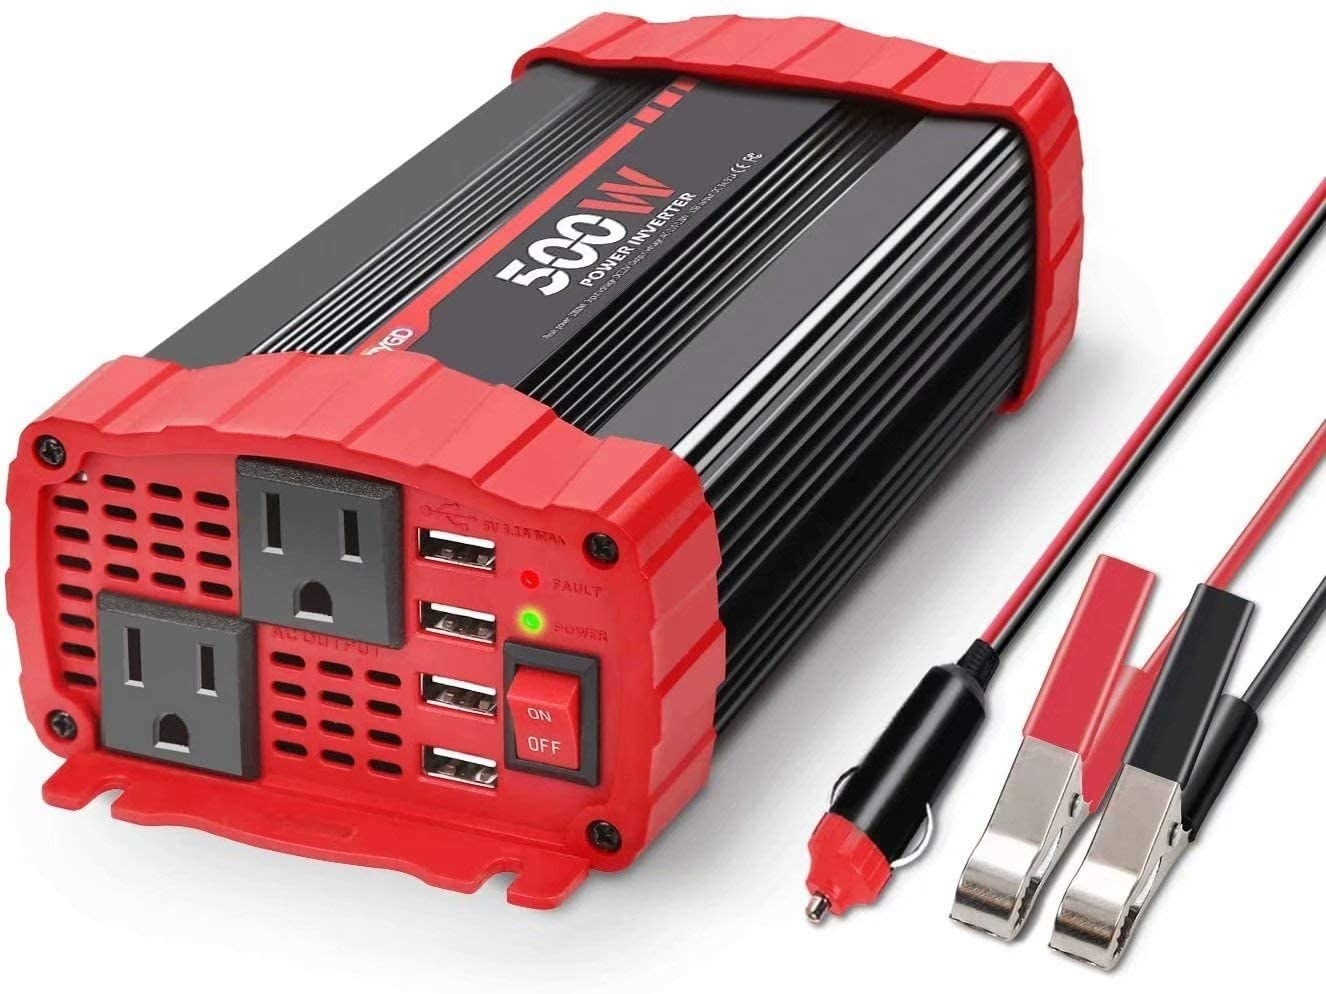 A close-up of the power inverter